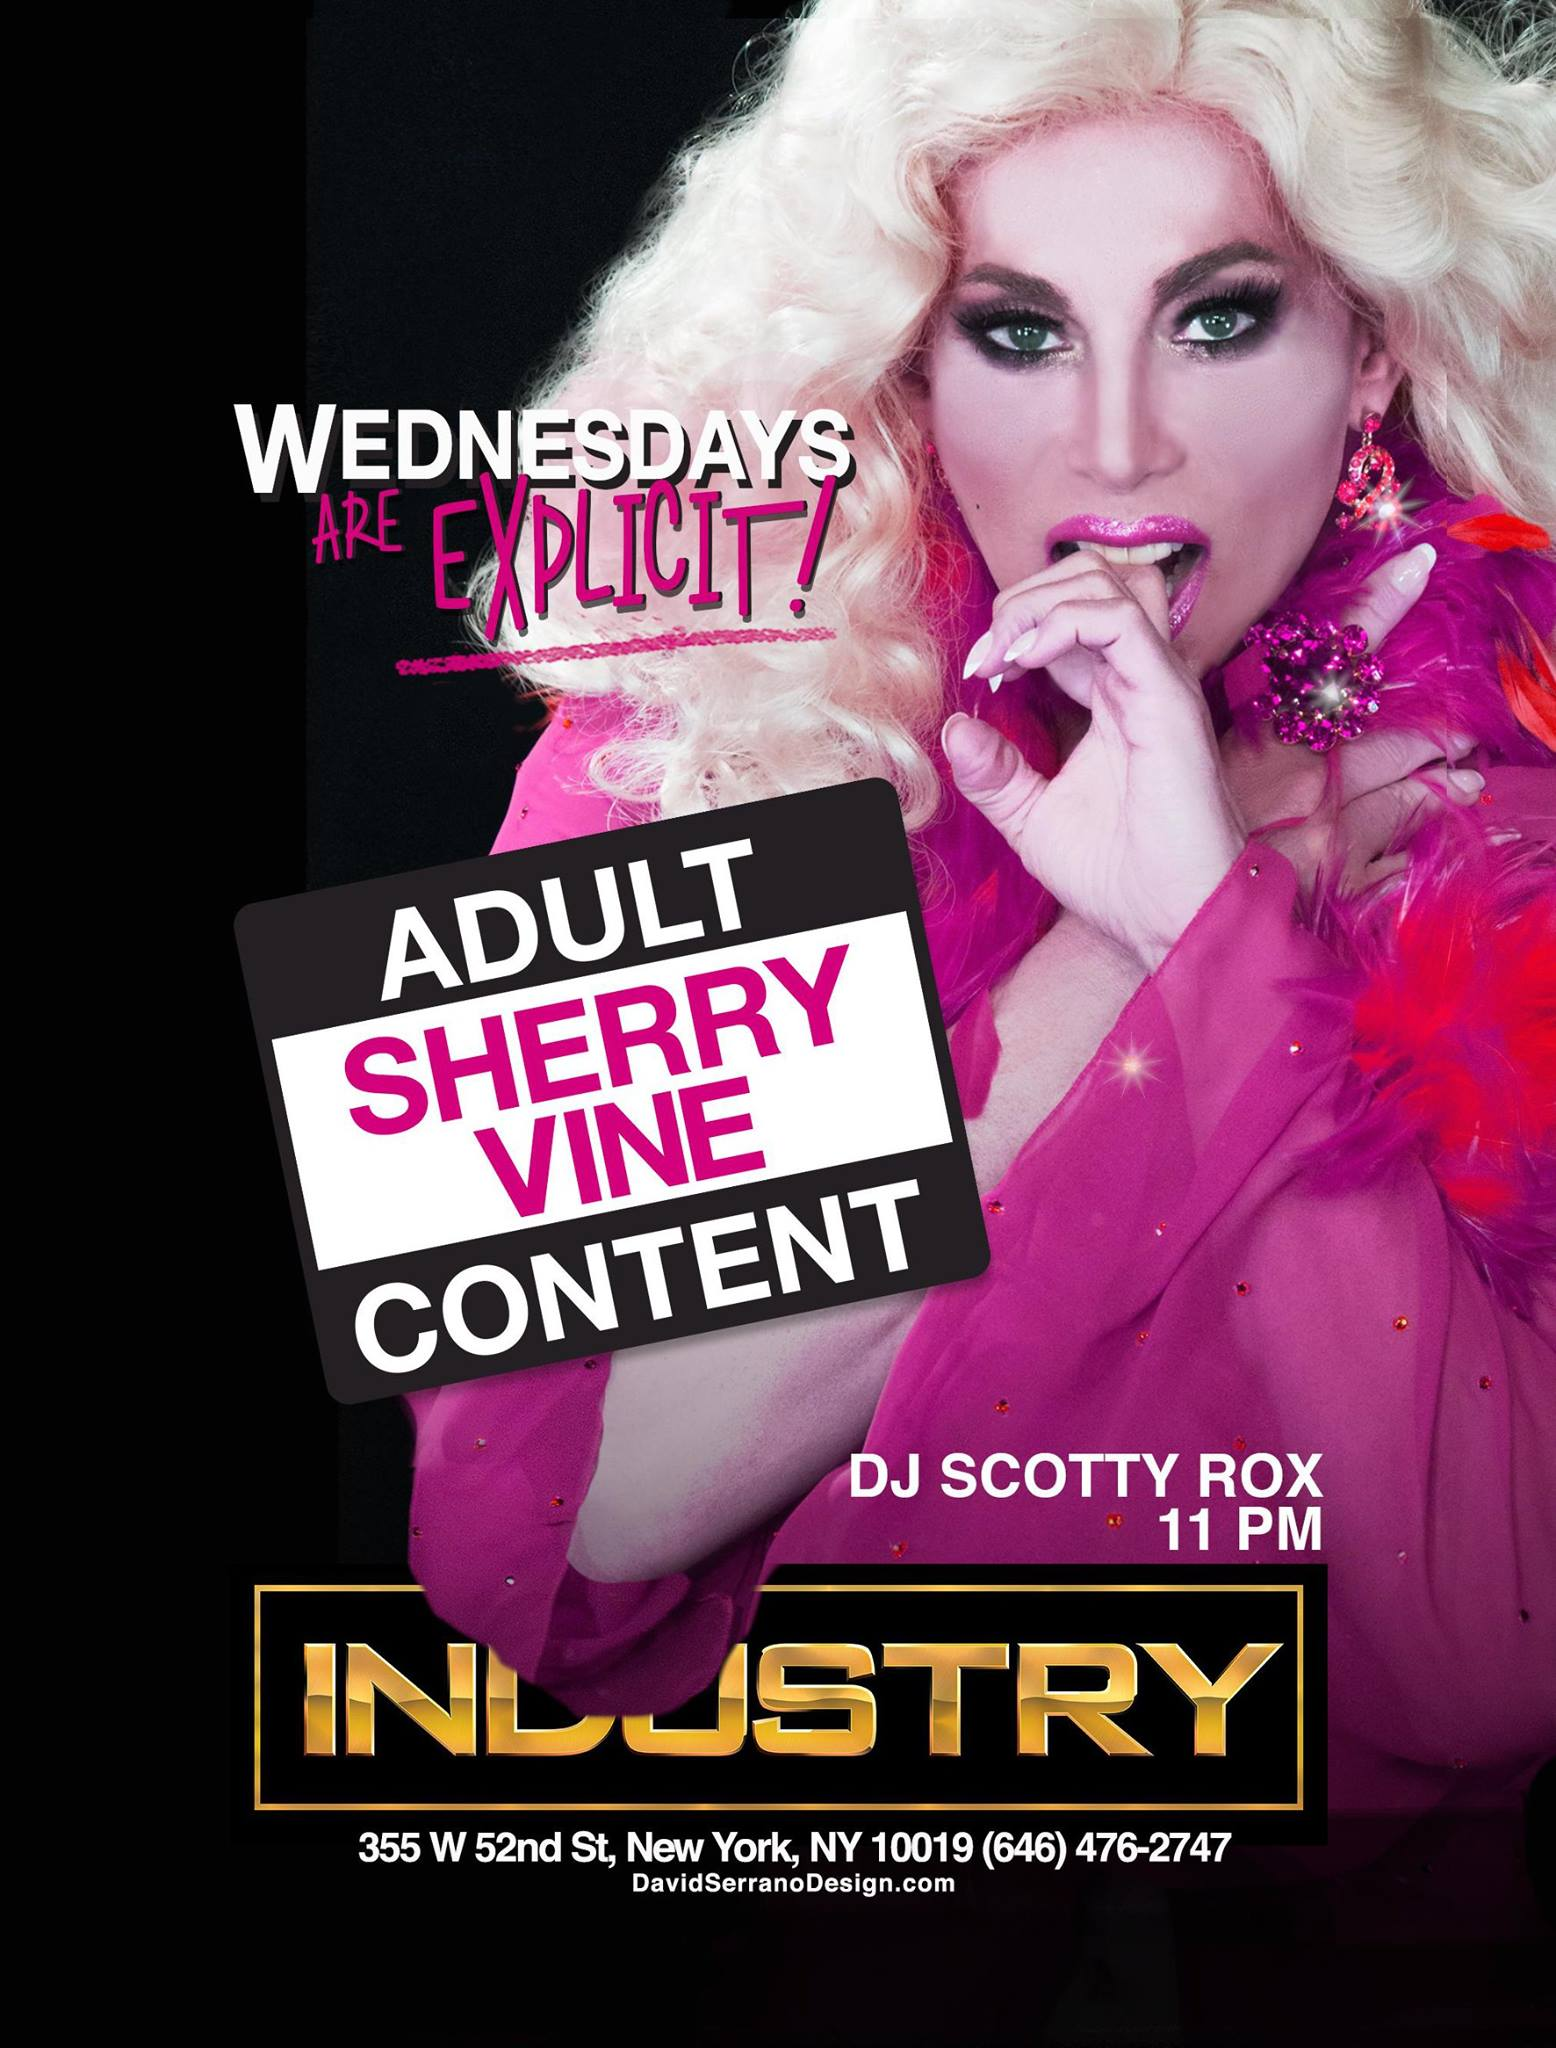 Show Ad | Industry (New York, New York) | 7/27/2016